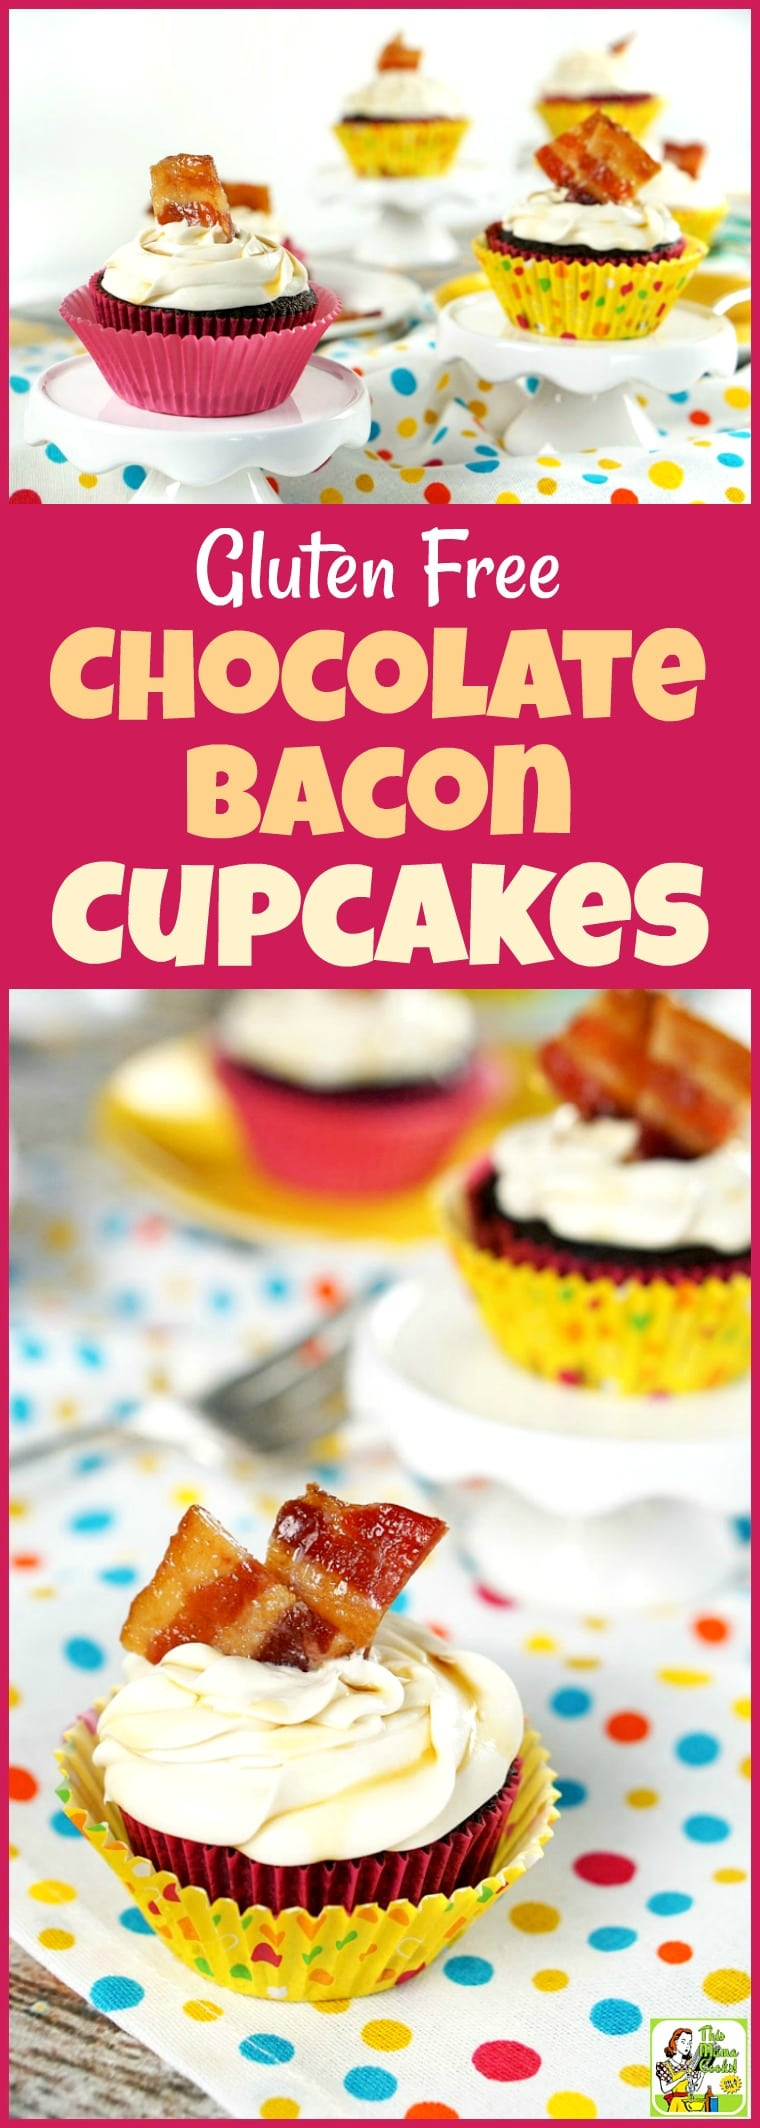 Gluten Free Chocolate Bacon Cupcakes Recipe